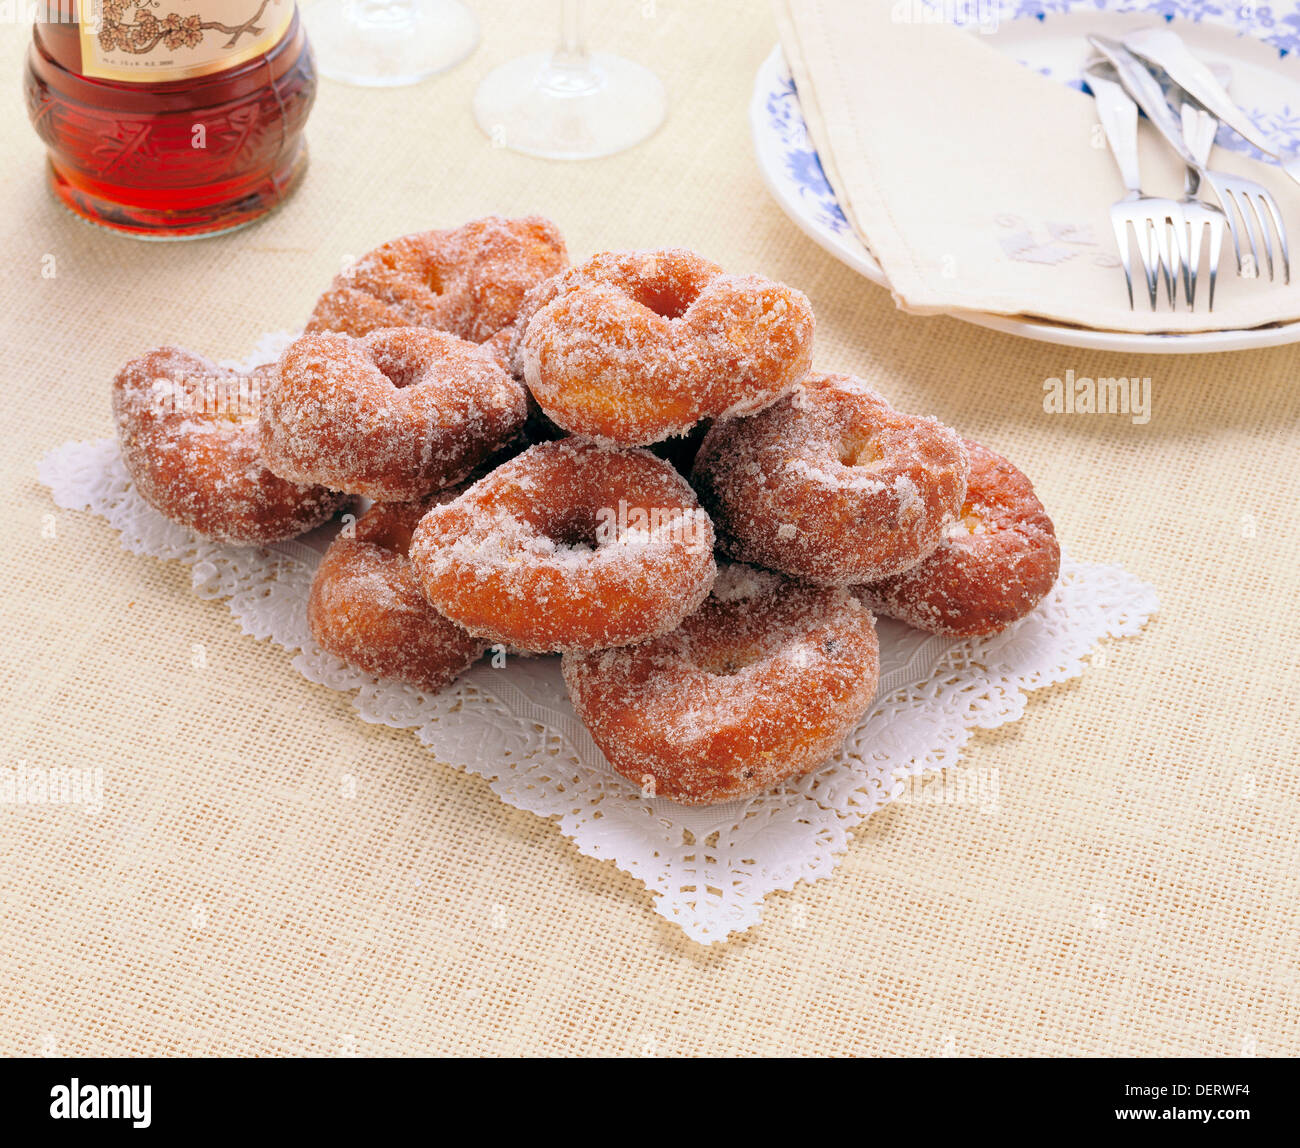 Fritters to be eaten traditionally during Lent season in Spain - Stock Image